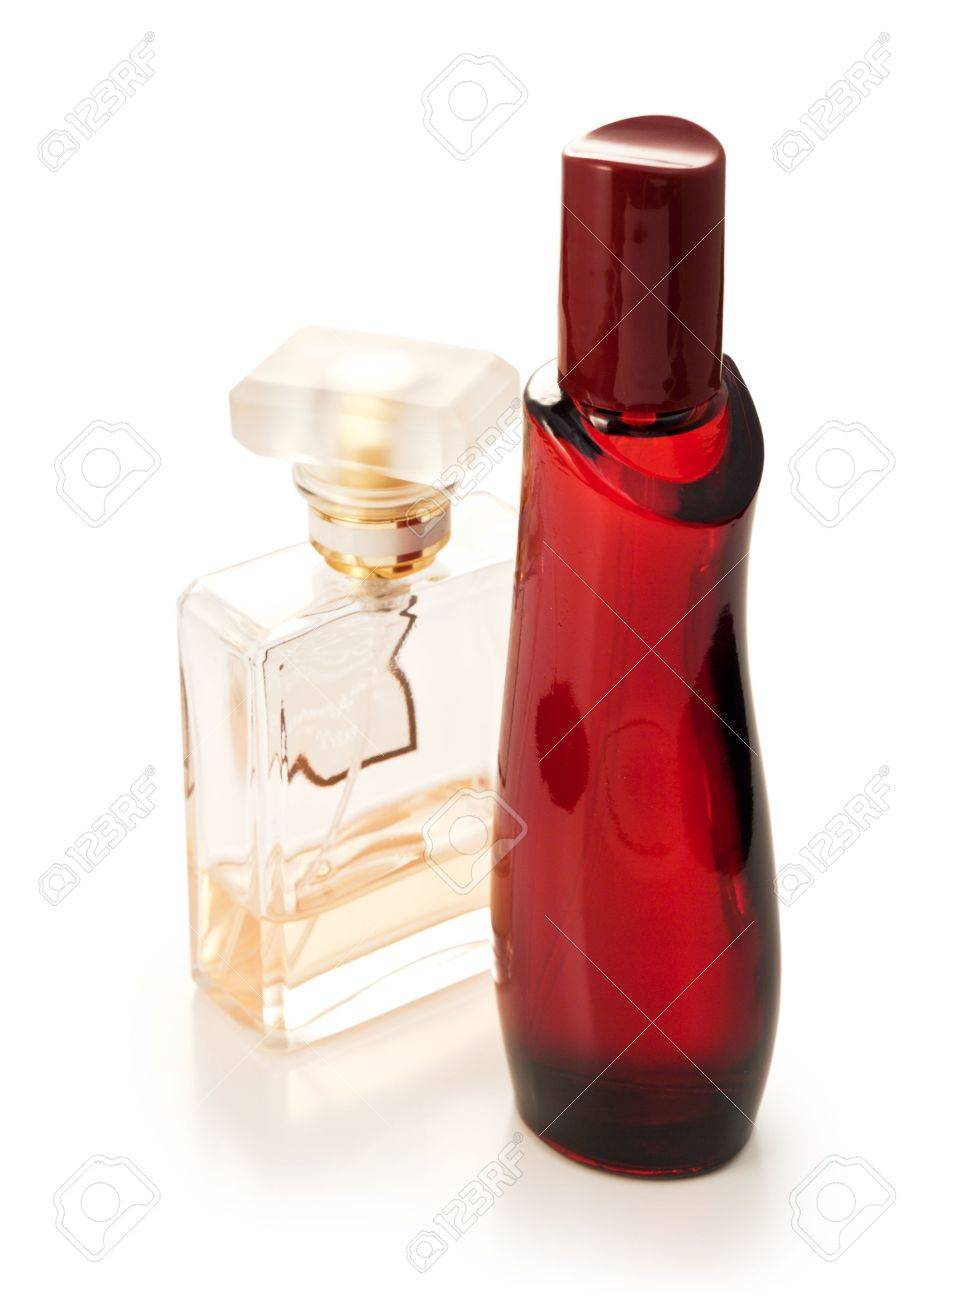 bottles of perfume and toilet water on a white background Stock Photo - 5552969